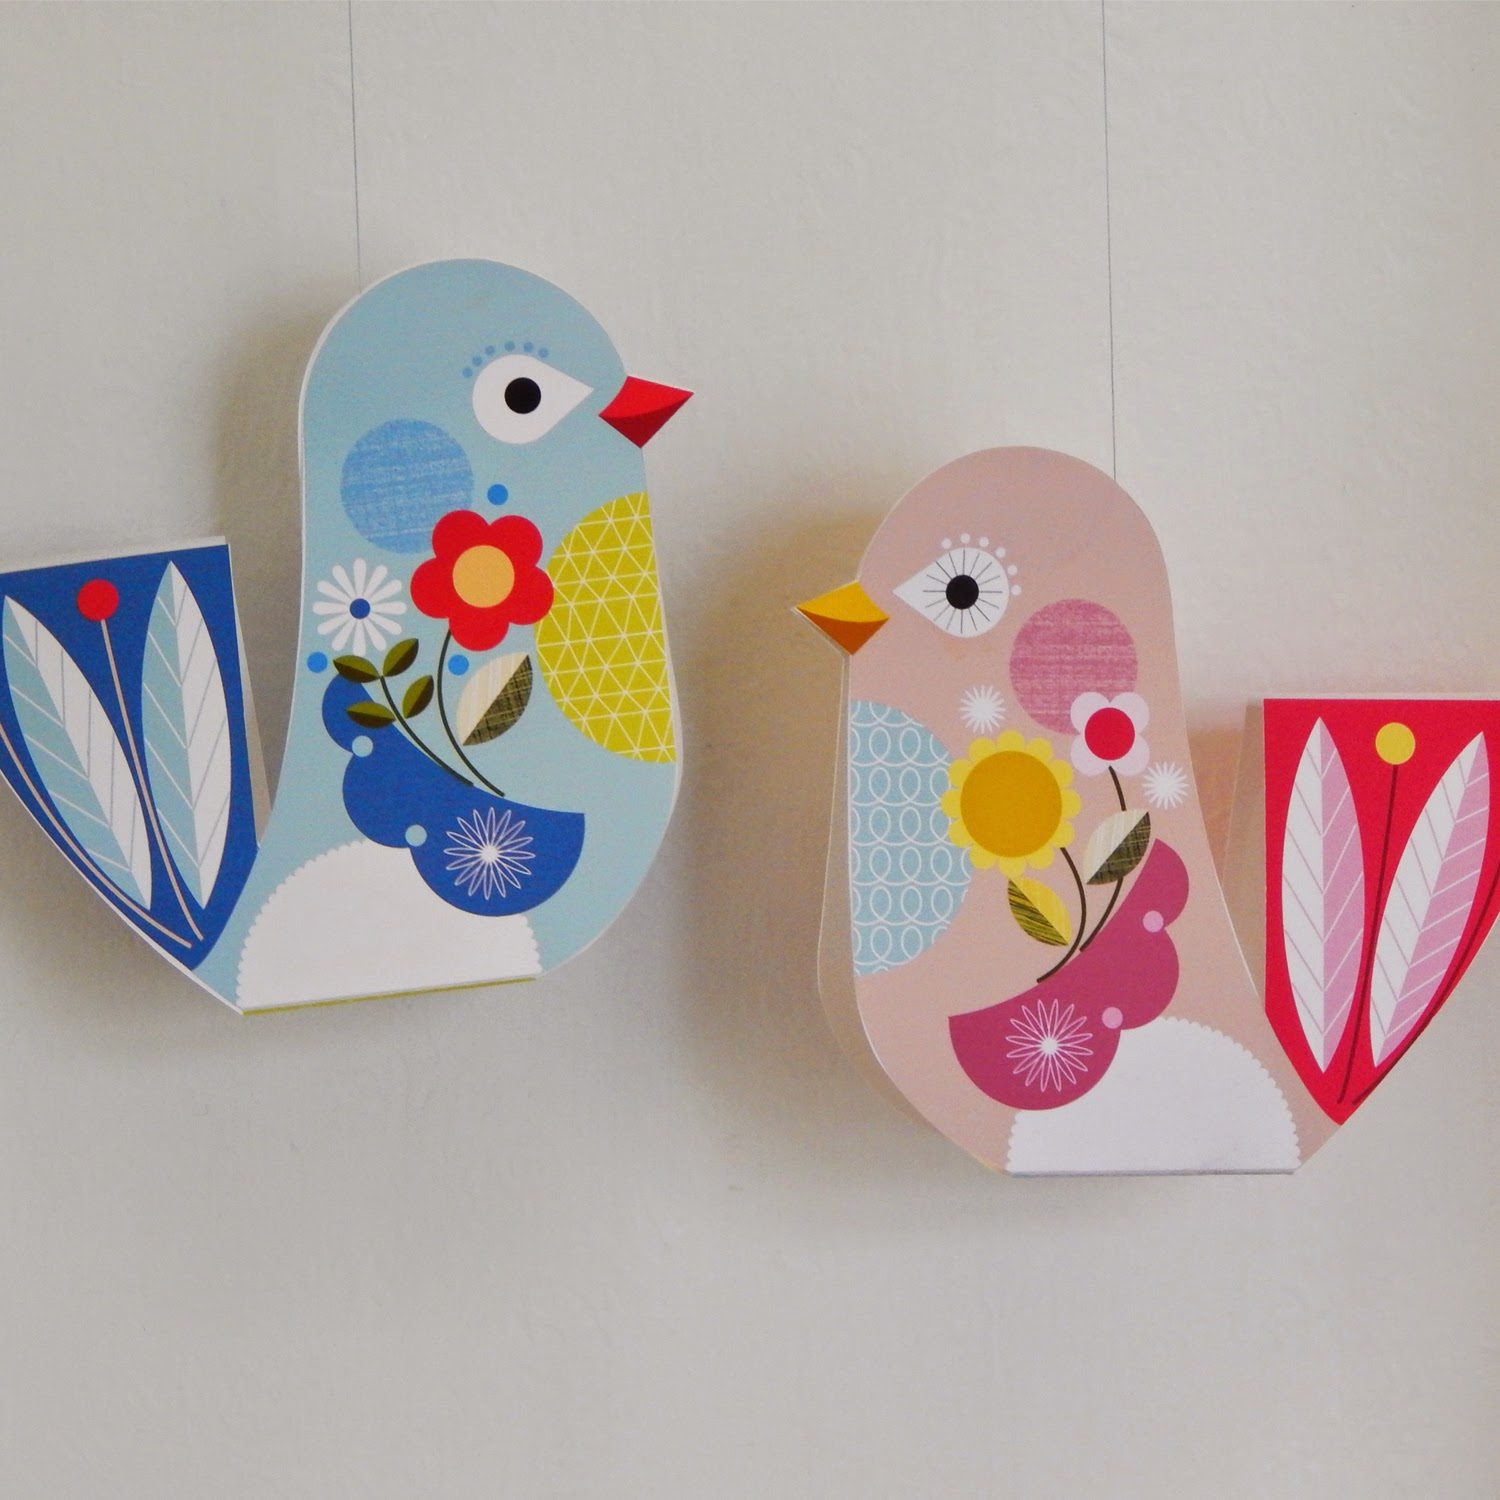 Paper for craft projects - Paper Craft Birds Hanging Ideas Arts And Crafts Projects